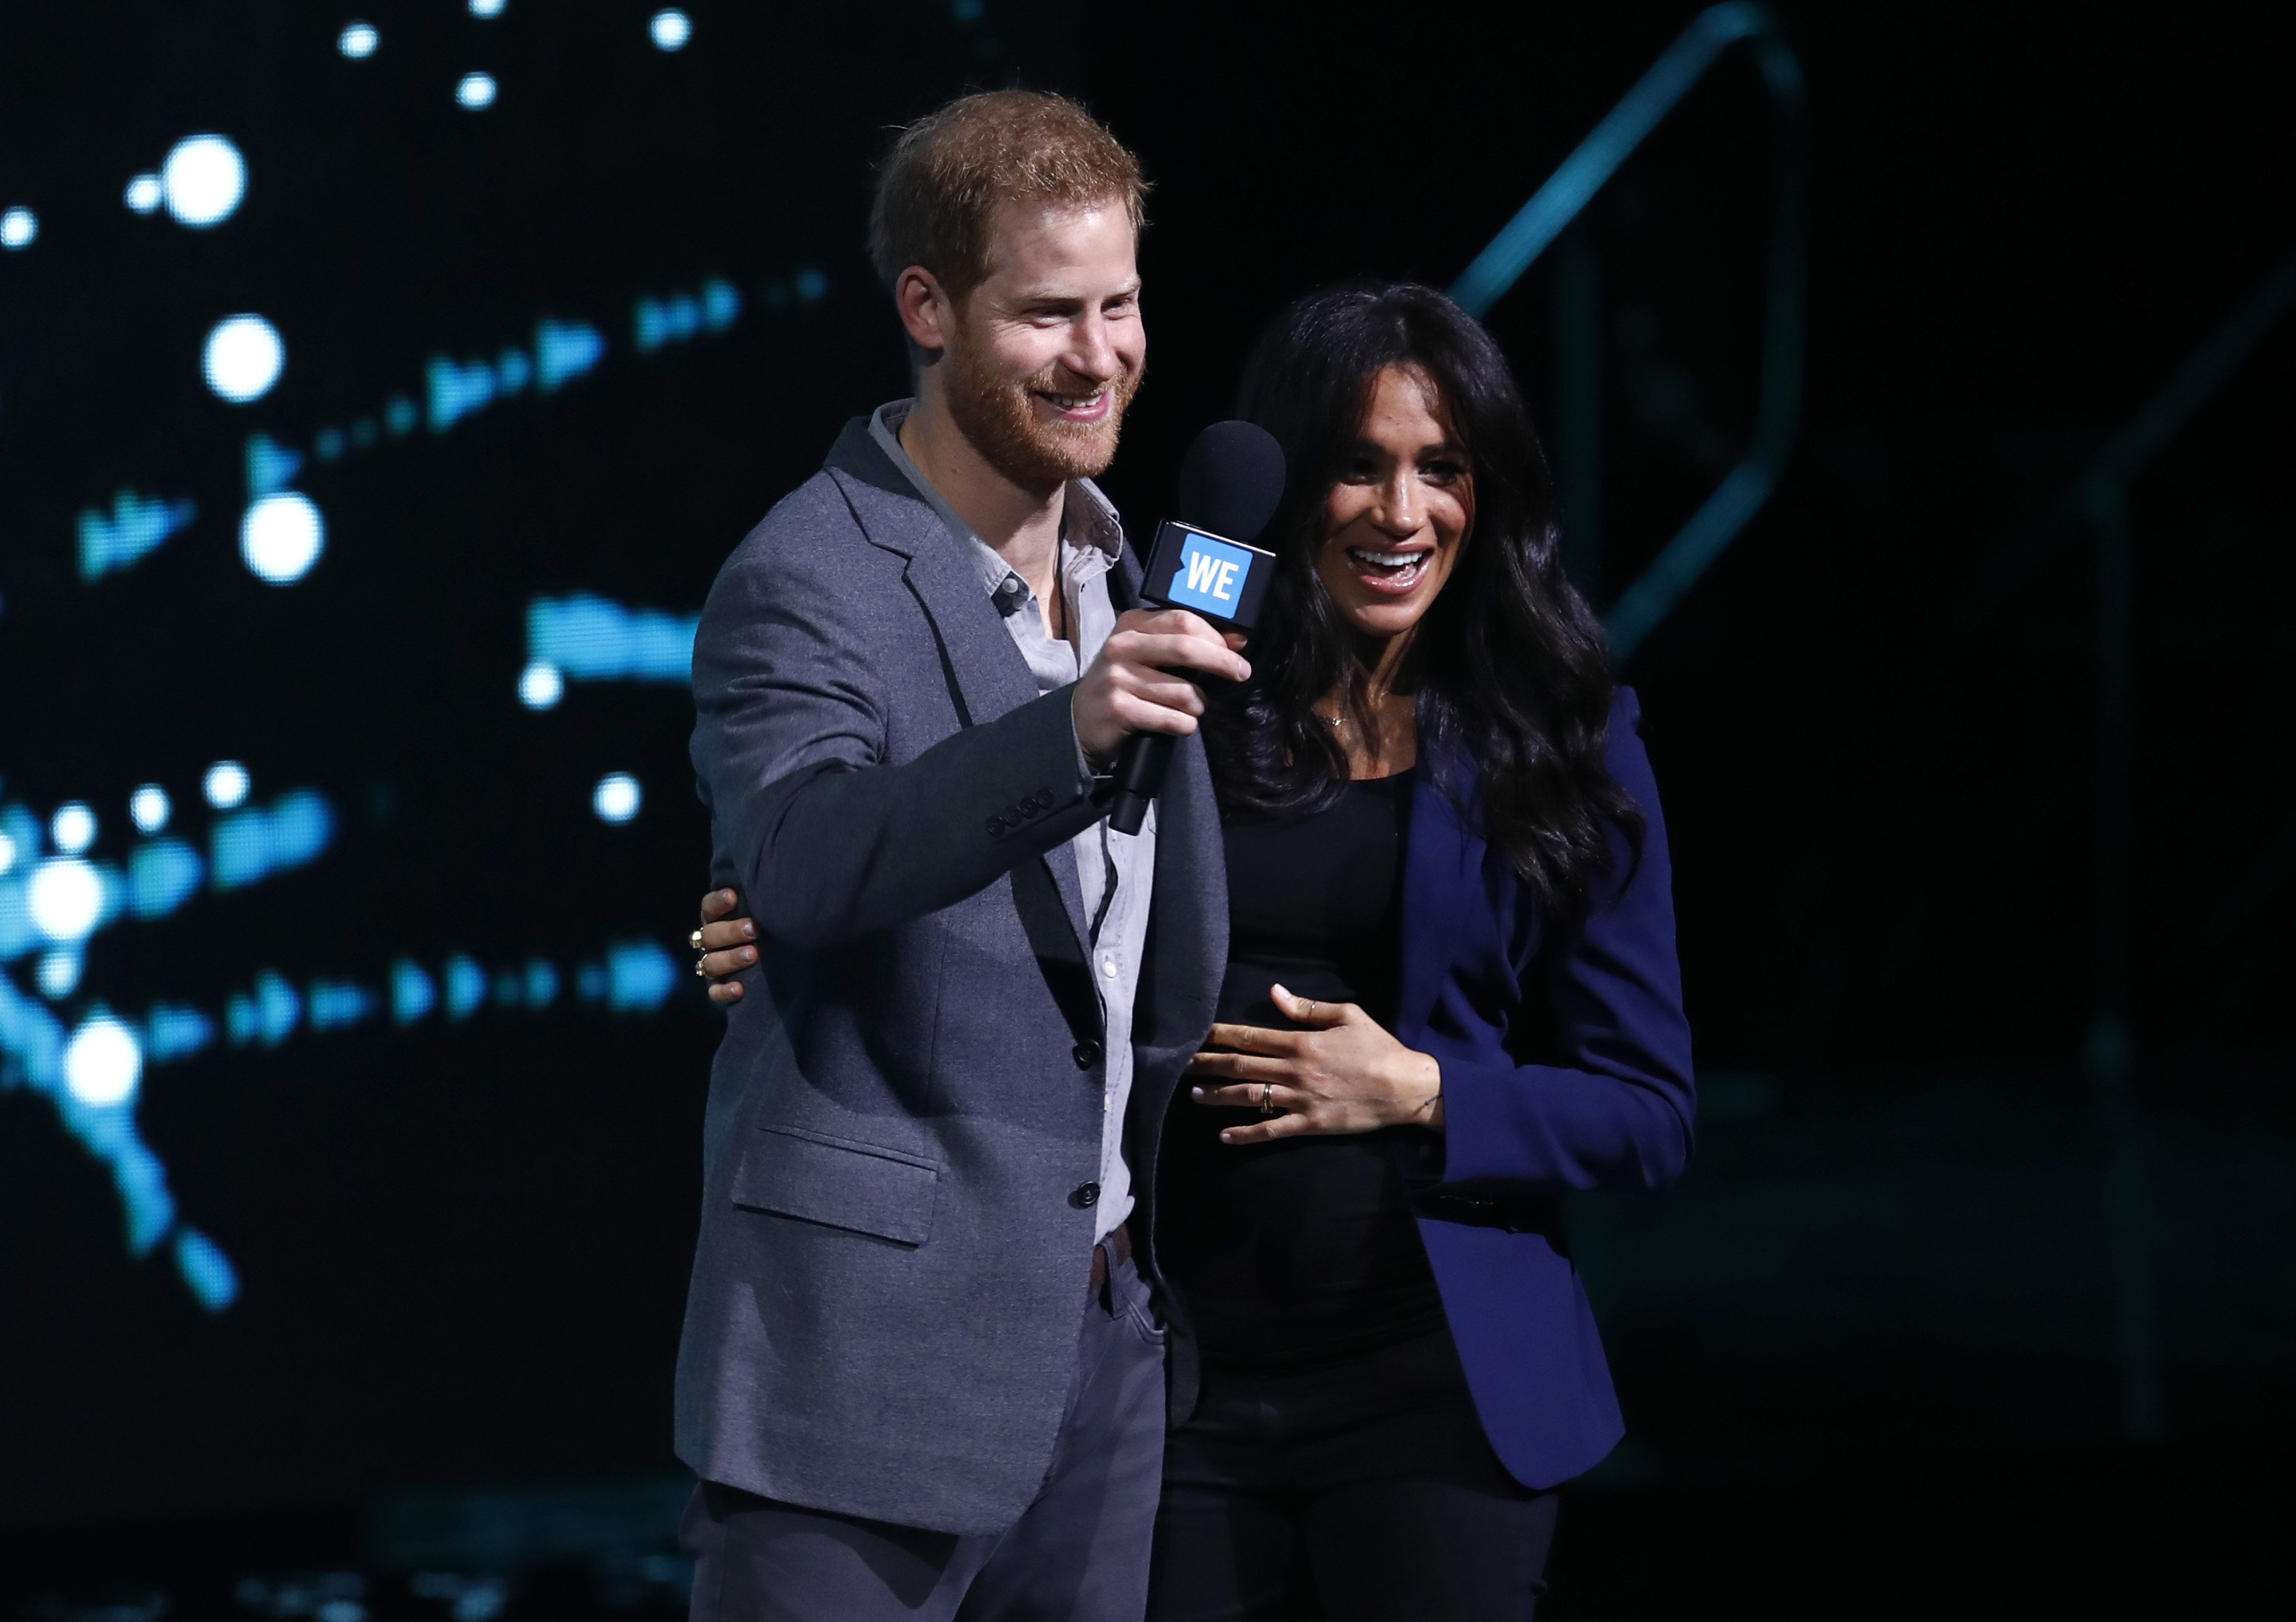 Prince Harry and Meghan Markle speak on stage during WE Day UK 2019 at The SSE Arena on March 06, 2019 in London, England   Photo: Getty Images